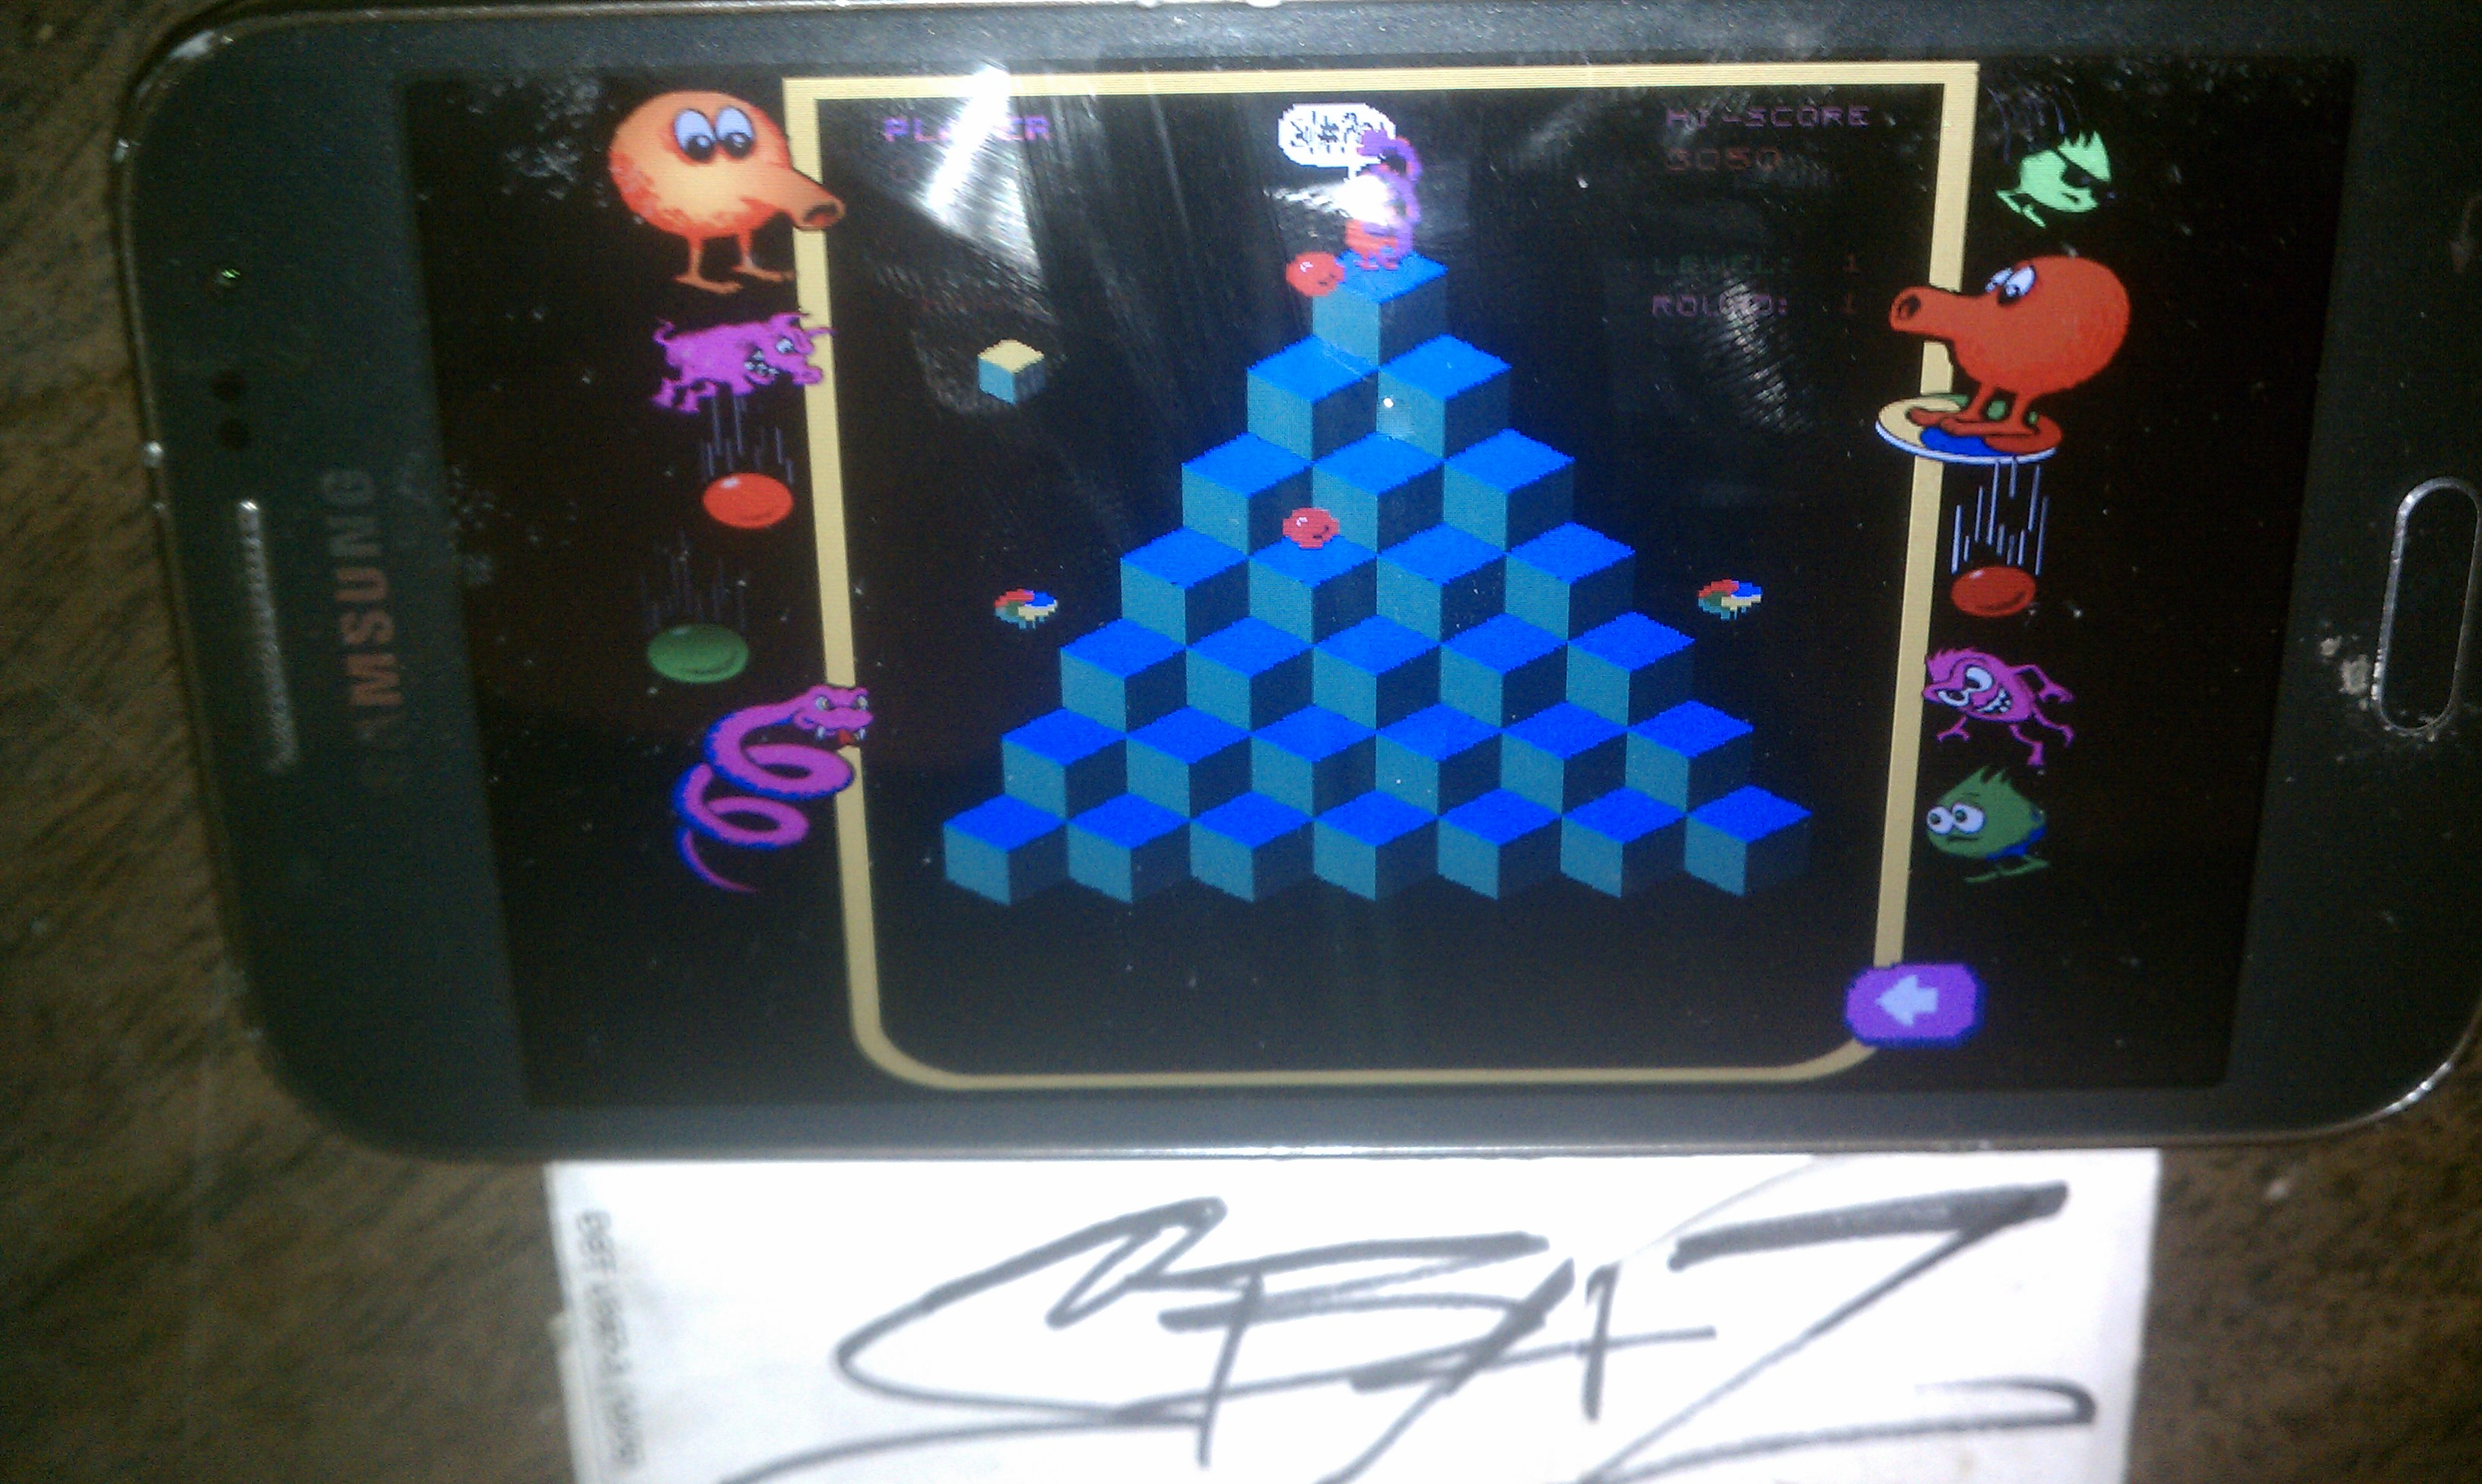 S.BAZ: Q*bert Rebooted [Classic] (Android) 3,050 points on 2018-02-14 22:37:16